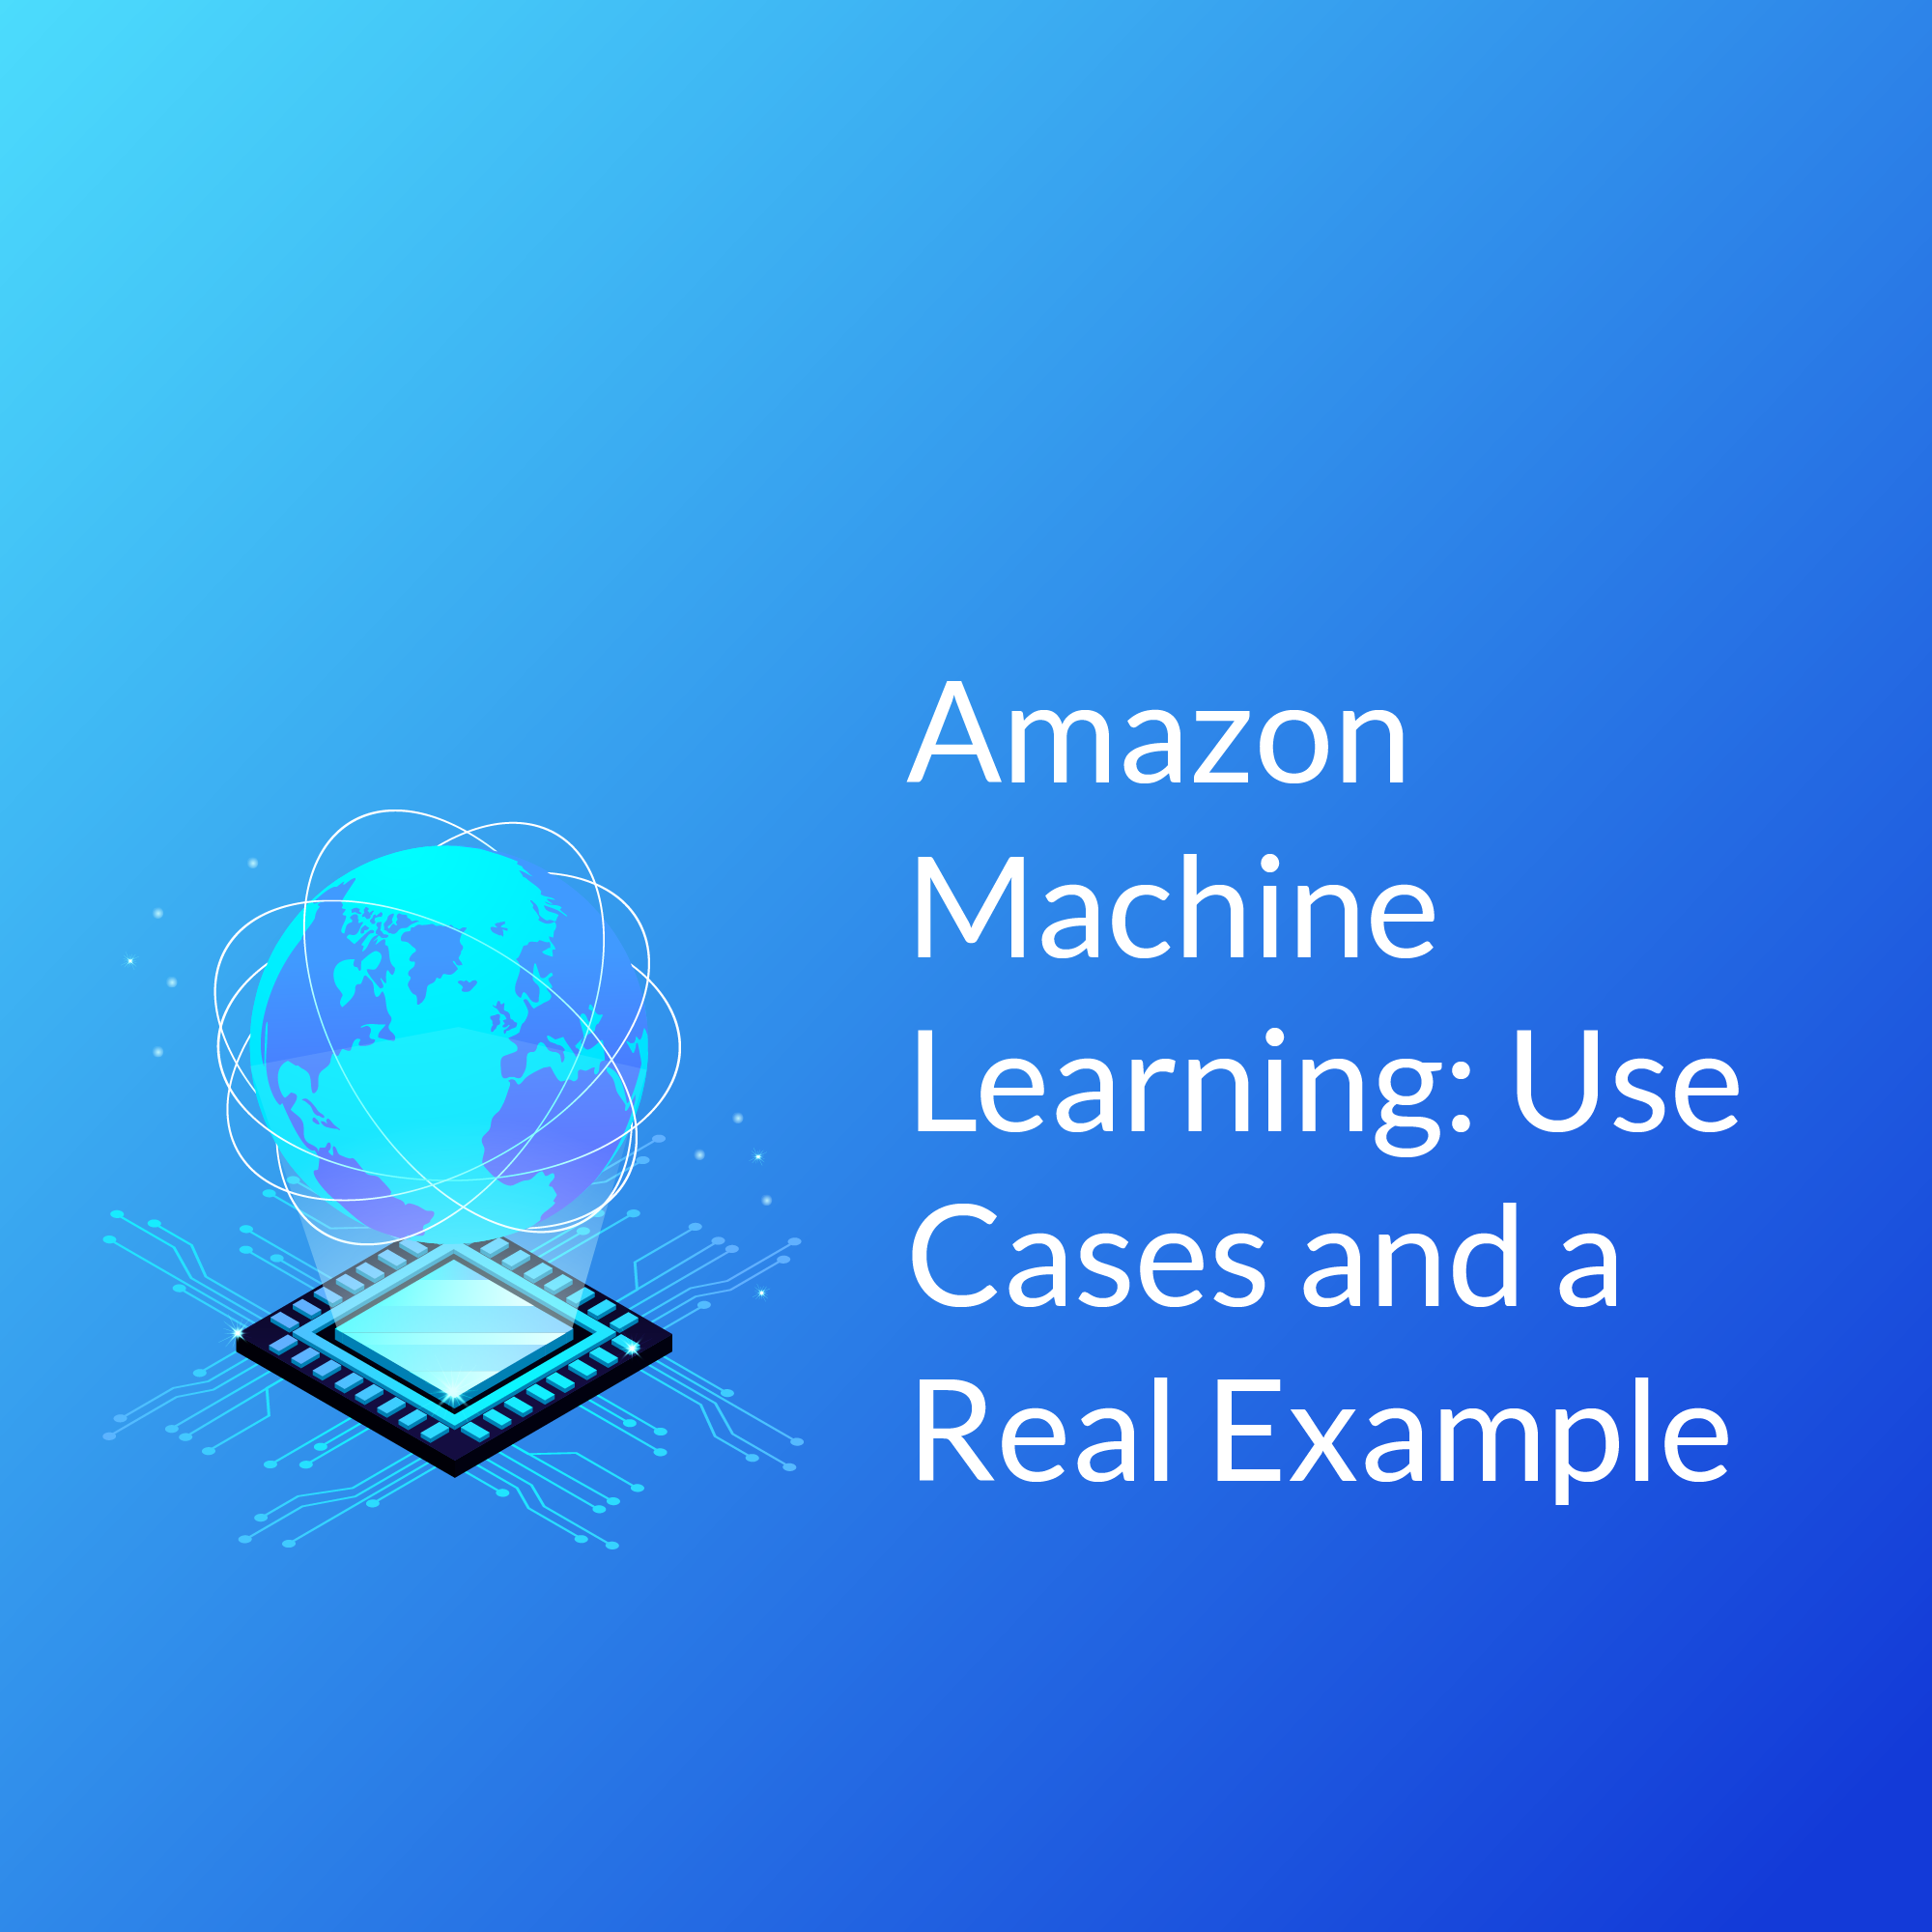 Amazon Machine Learning: Use Cases & Examples | Cloud Academy